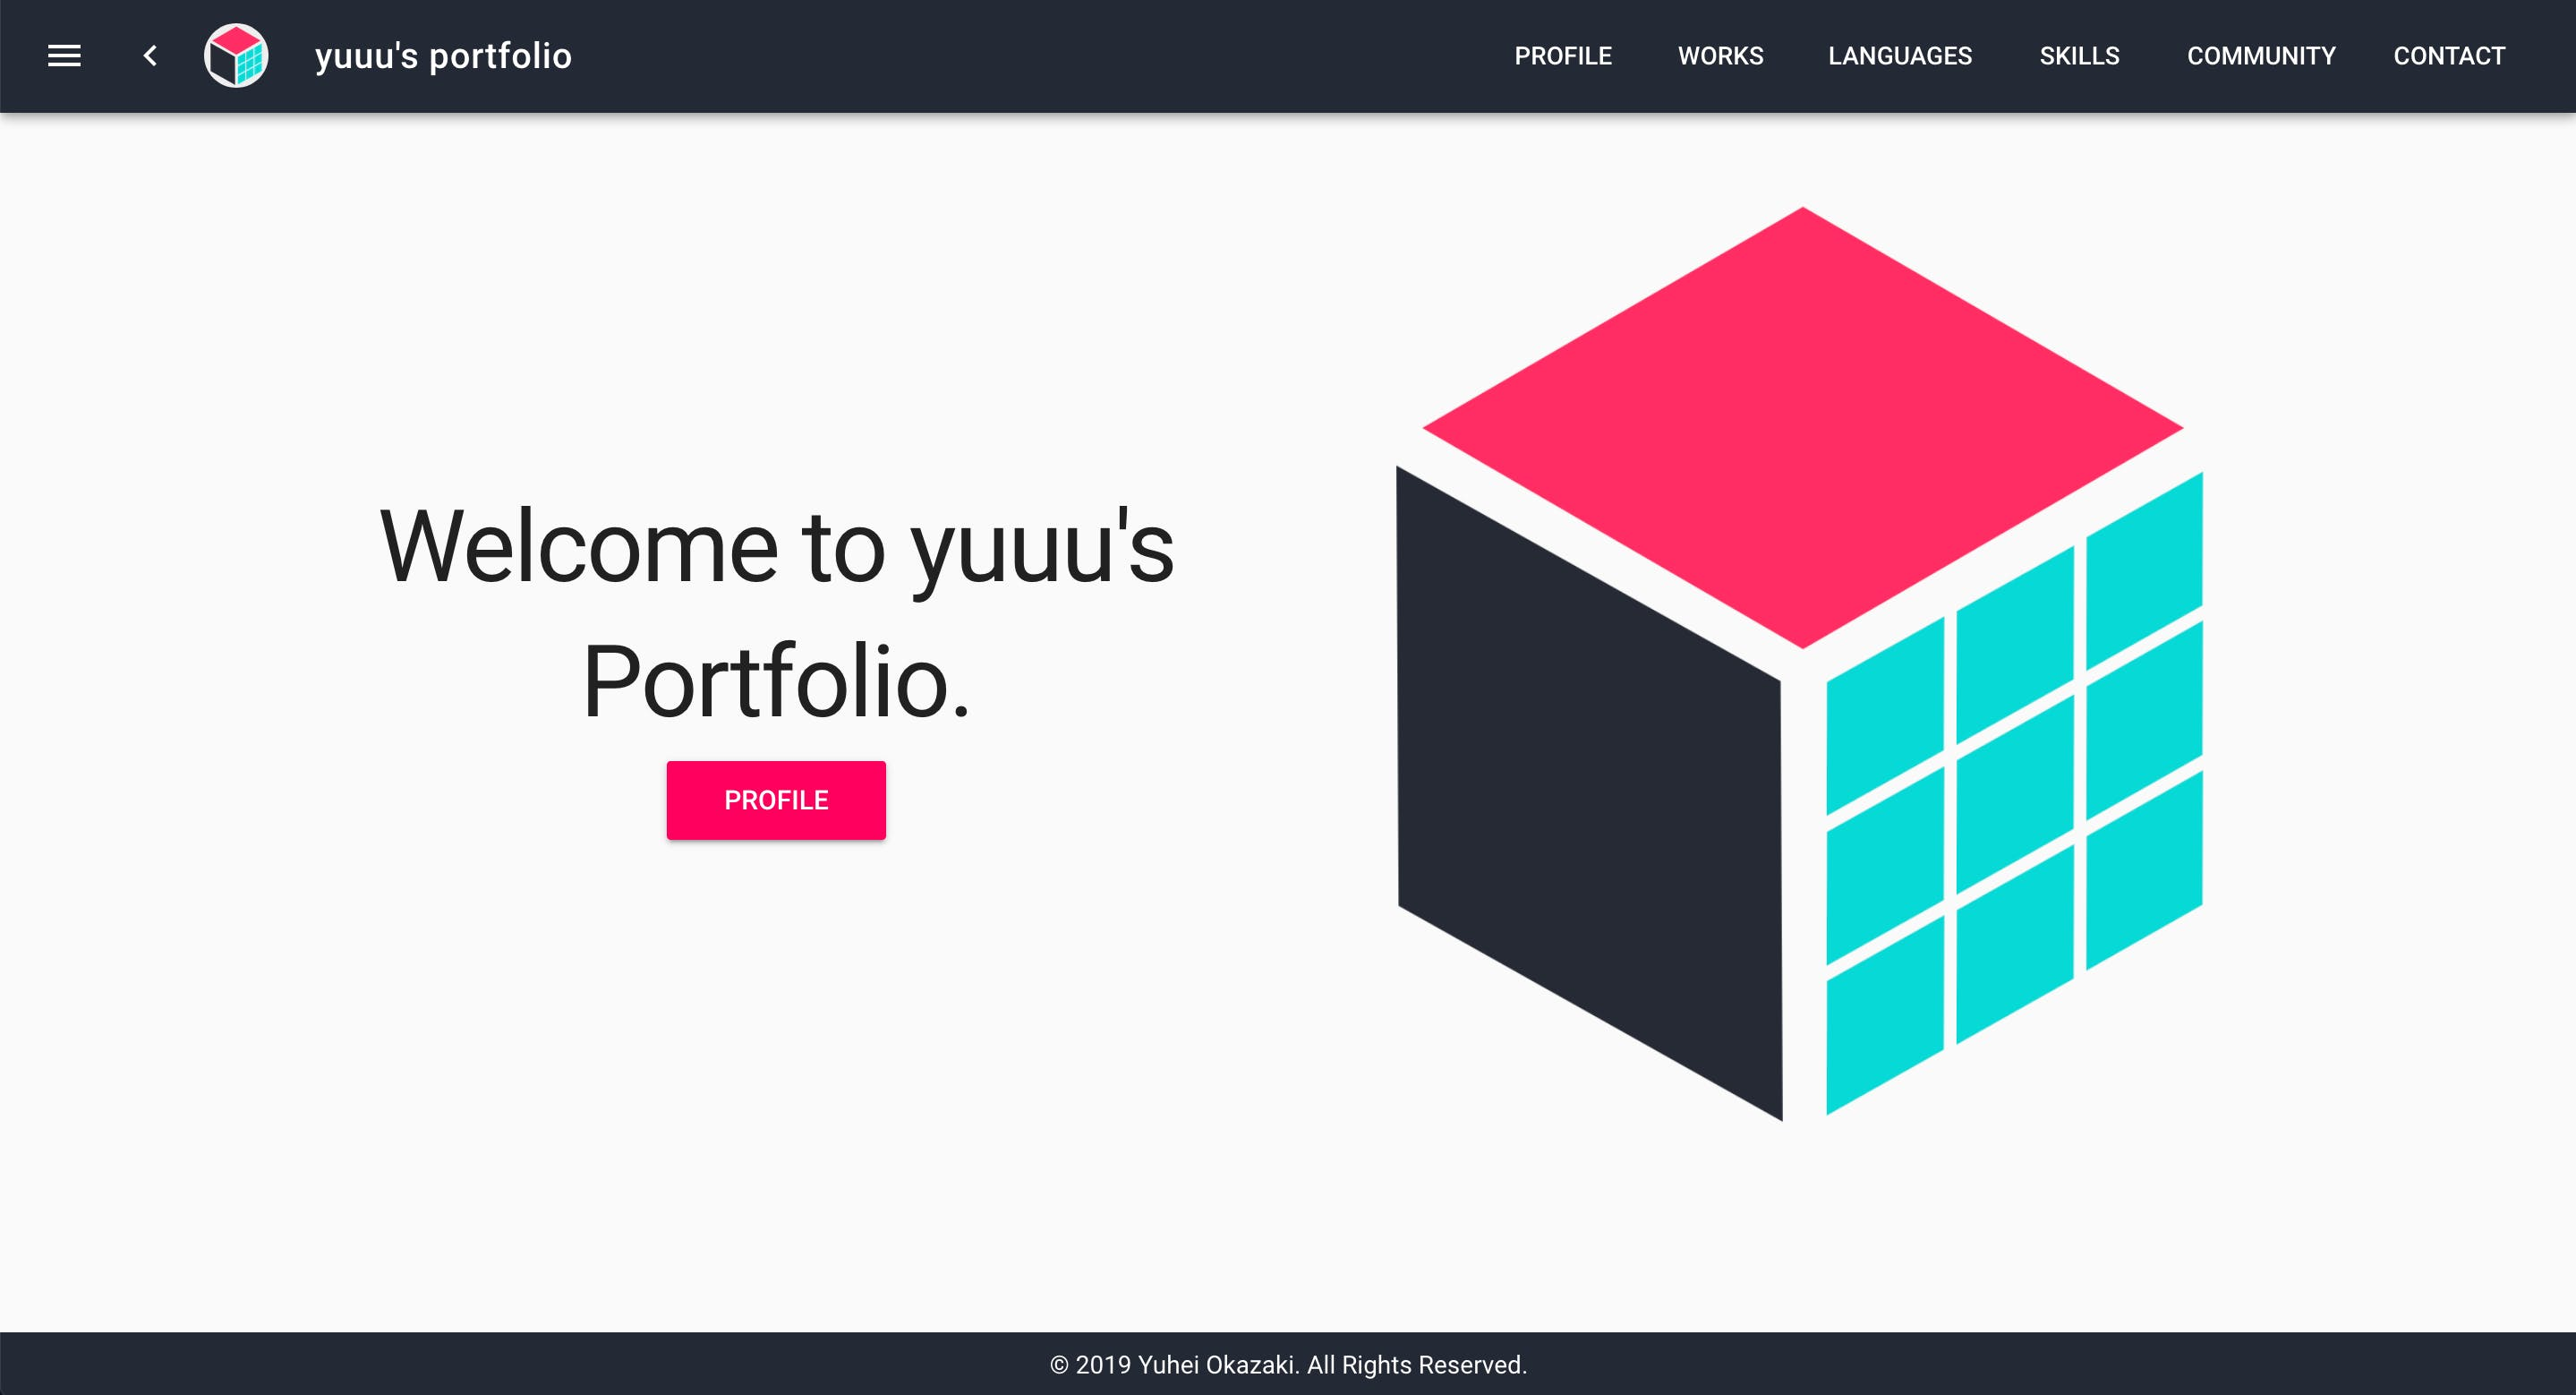 Banners_and_Alerts_と_yuuu_s_portfolio.png